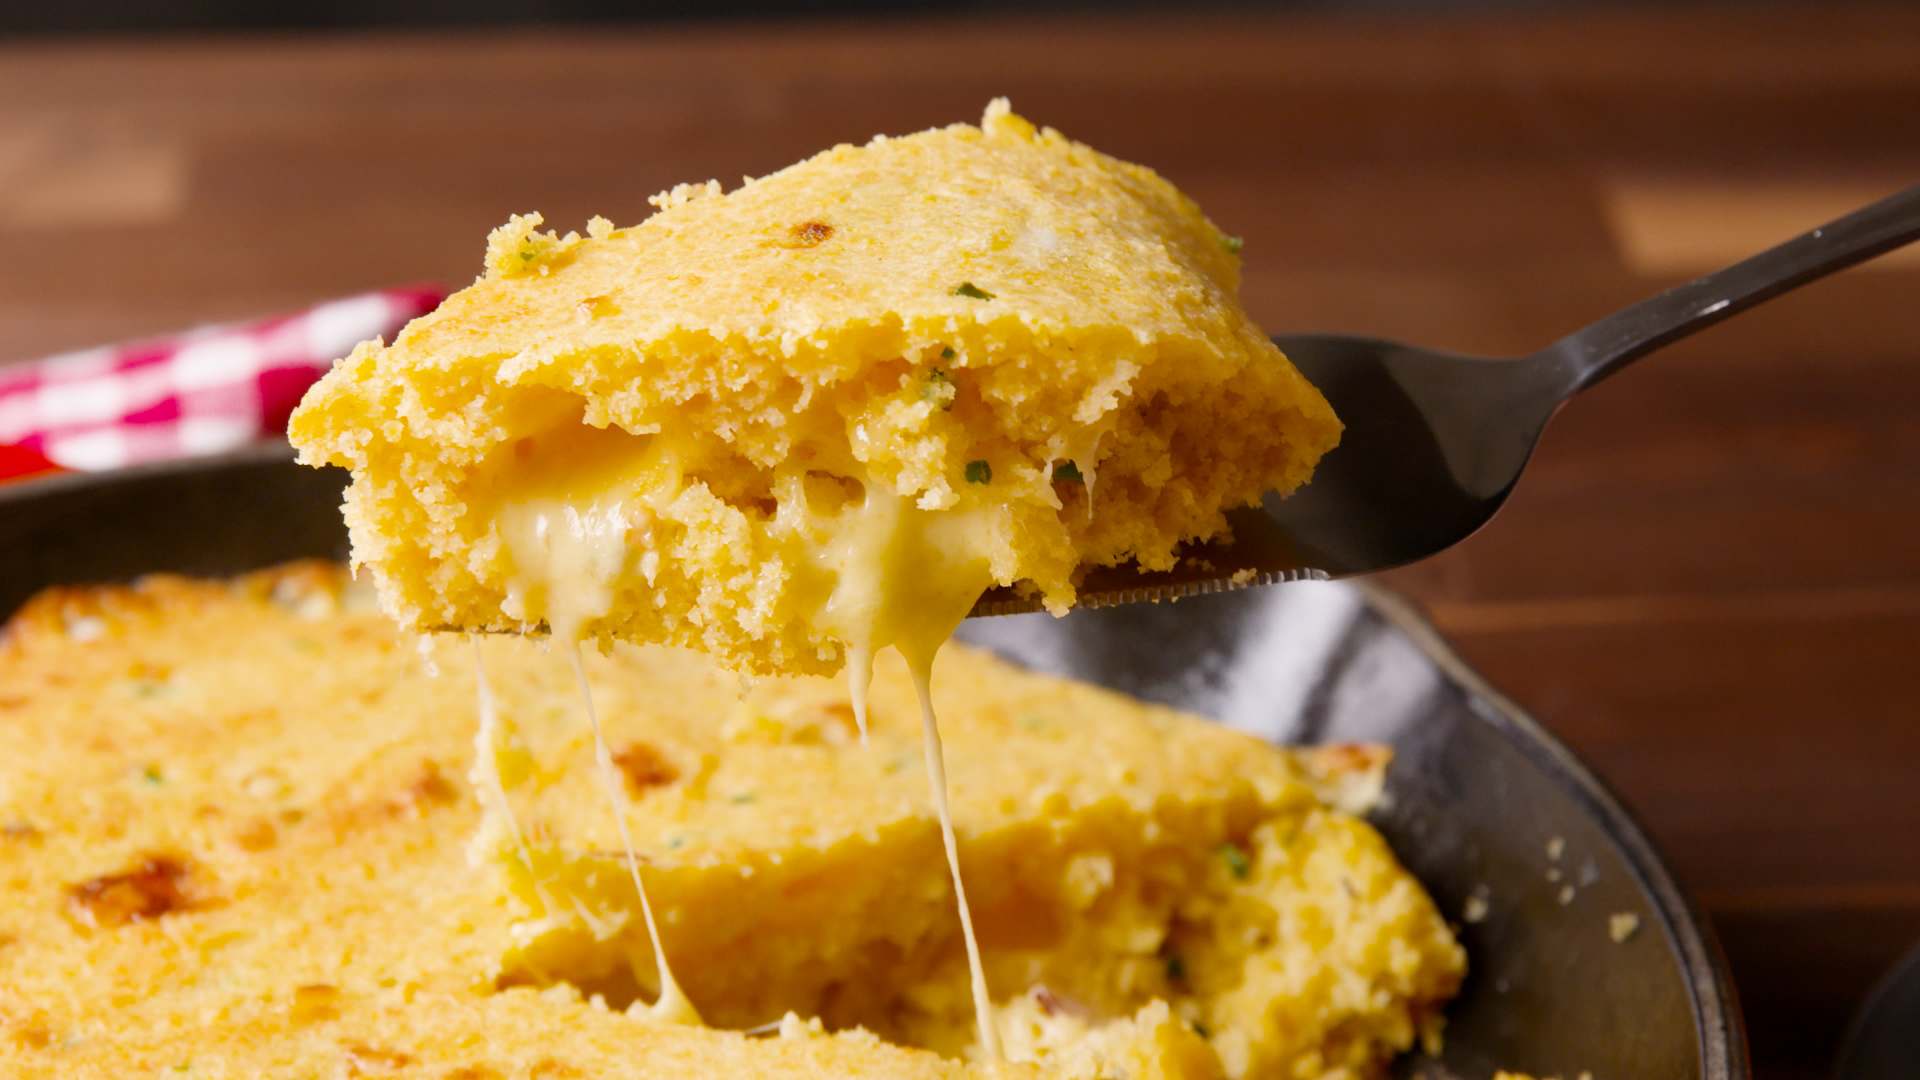 How to Make Cheese Cornbread